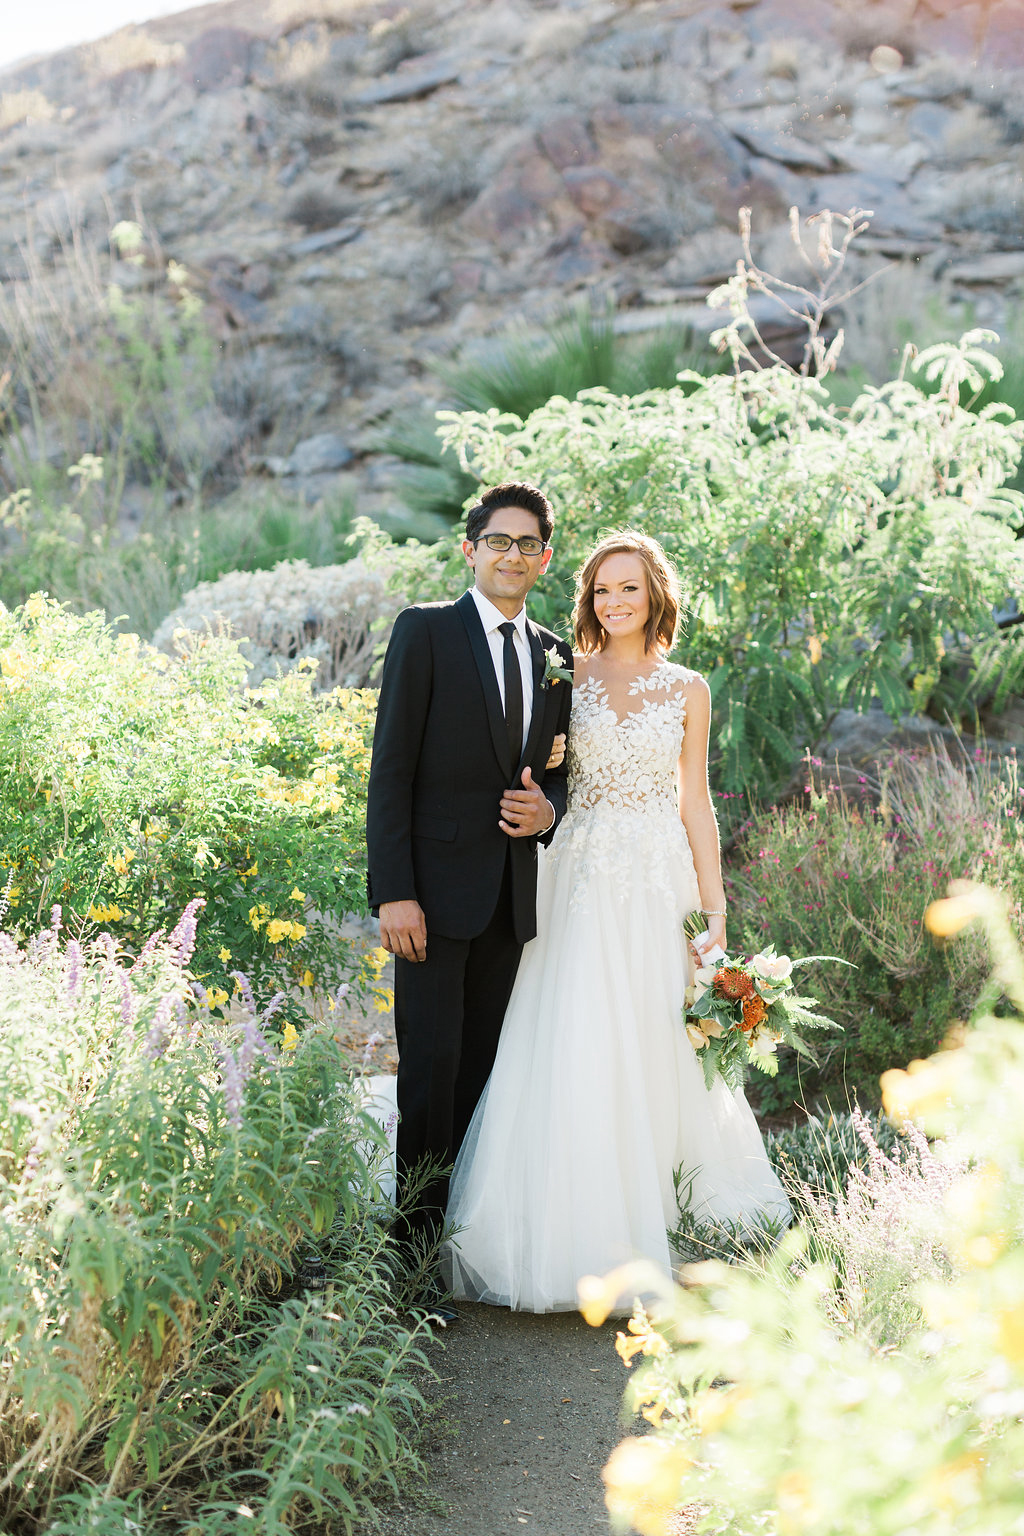 emily adhir wedding couple arm in arm